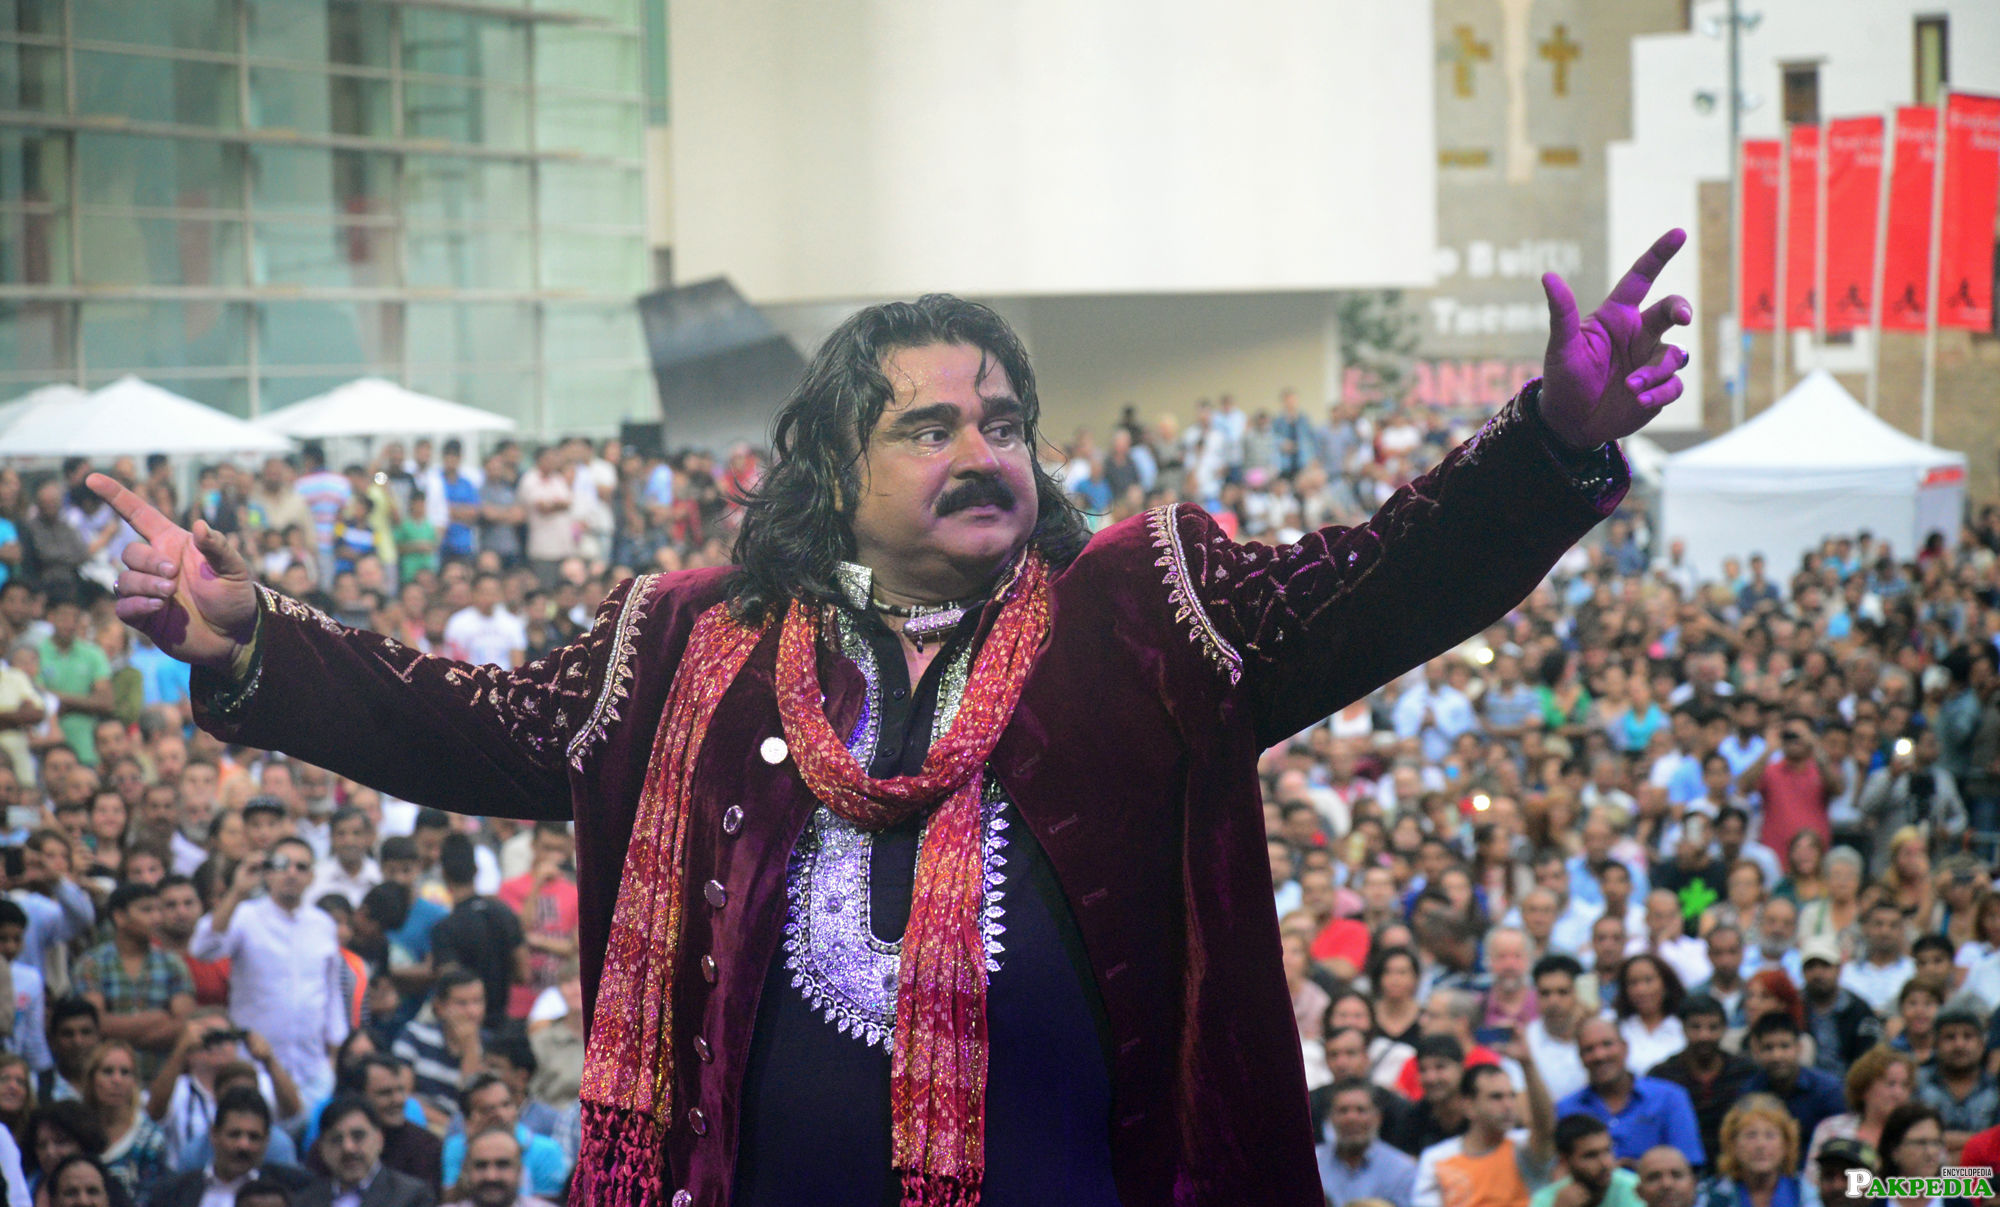 Arif Lohar with His fans